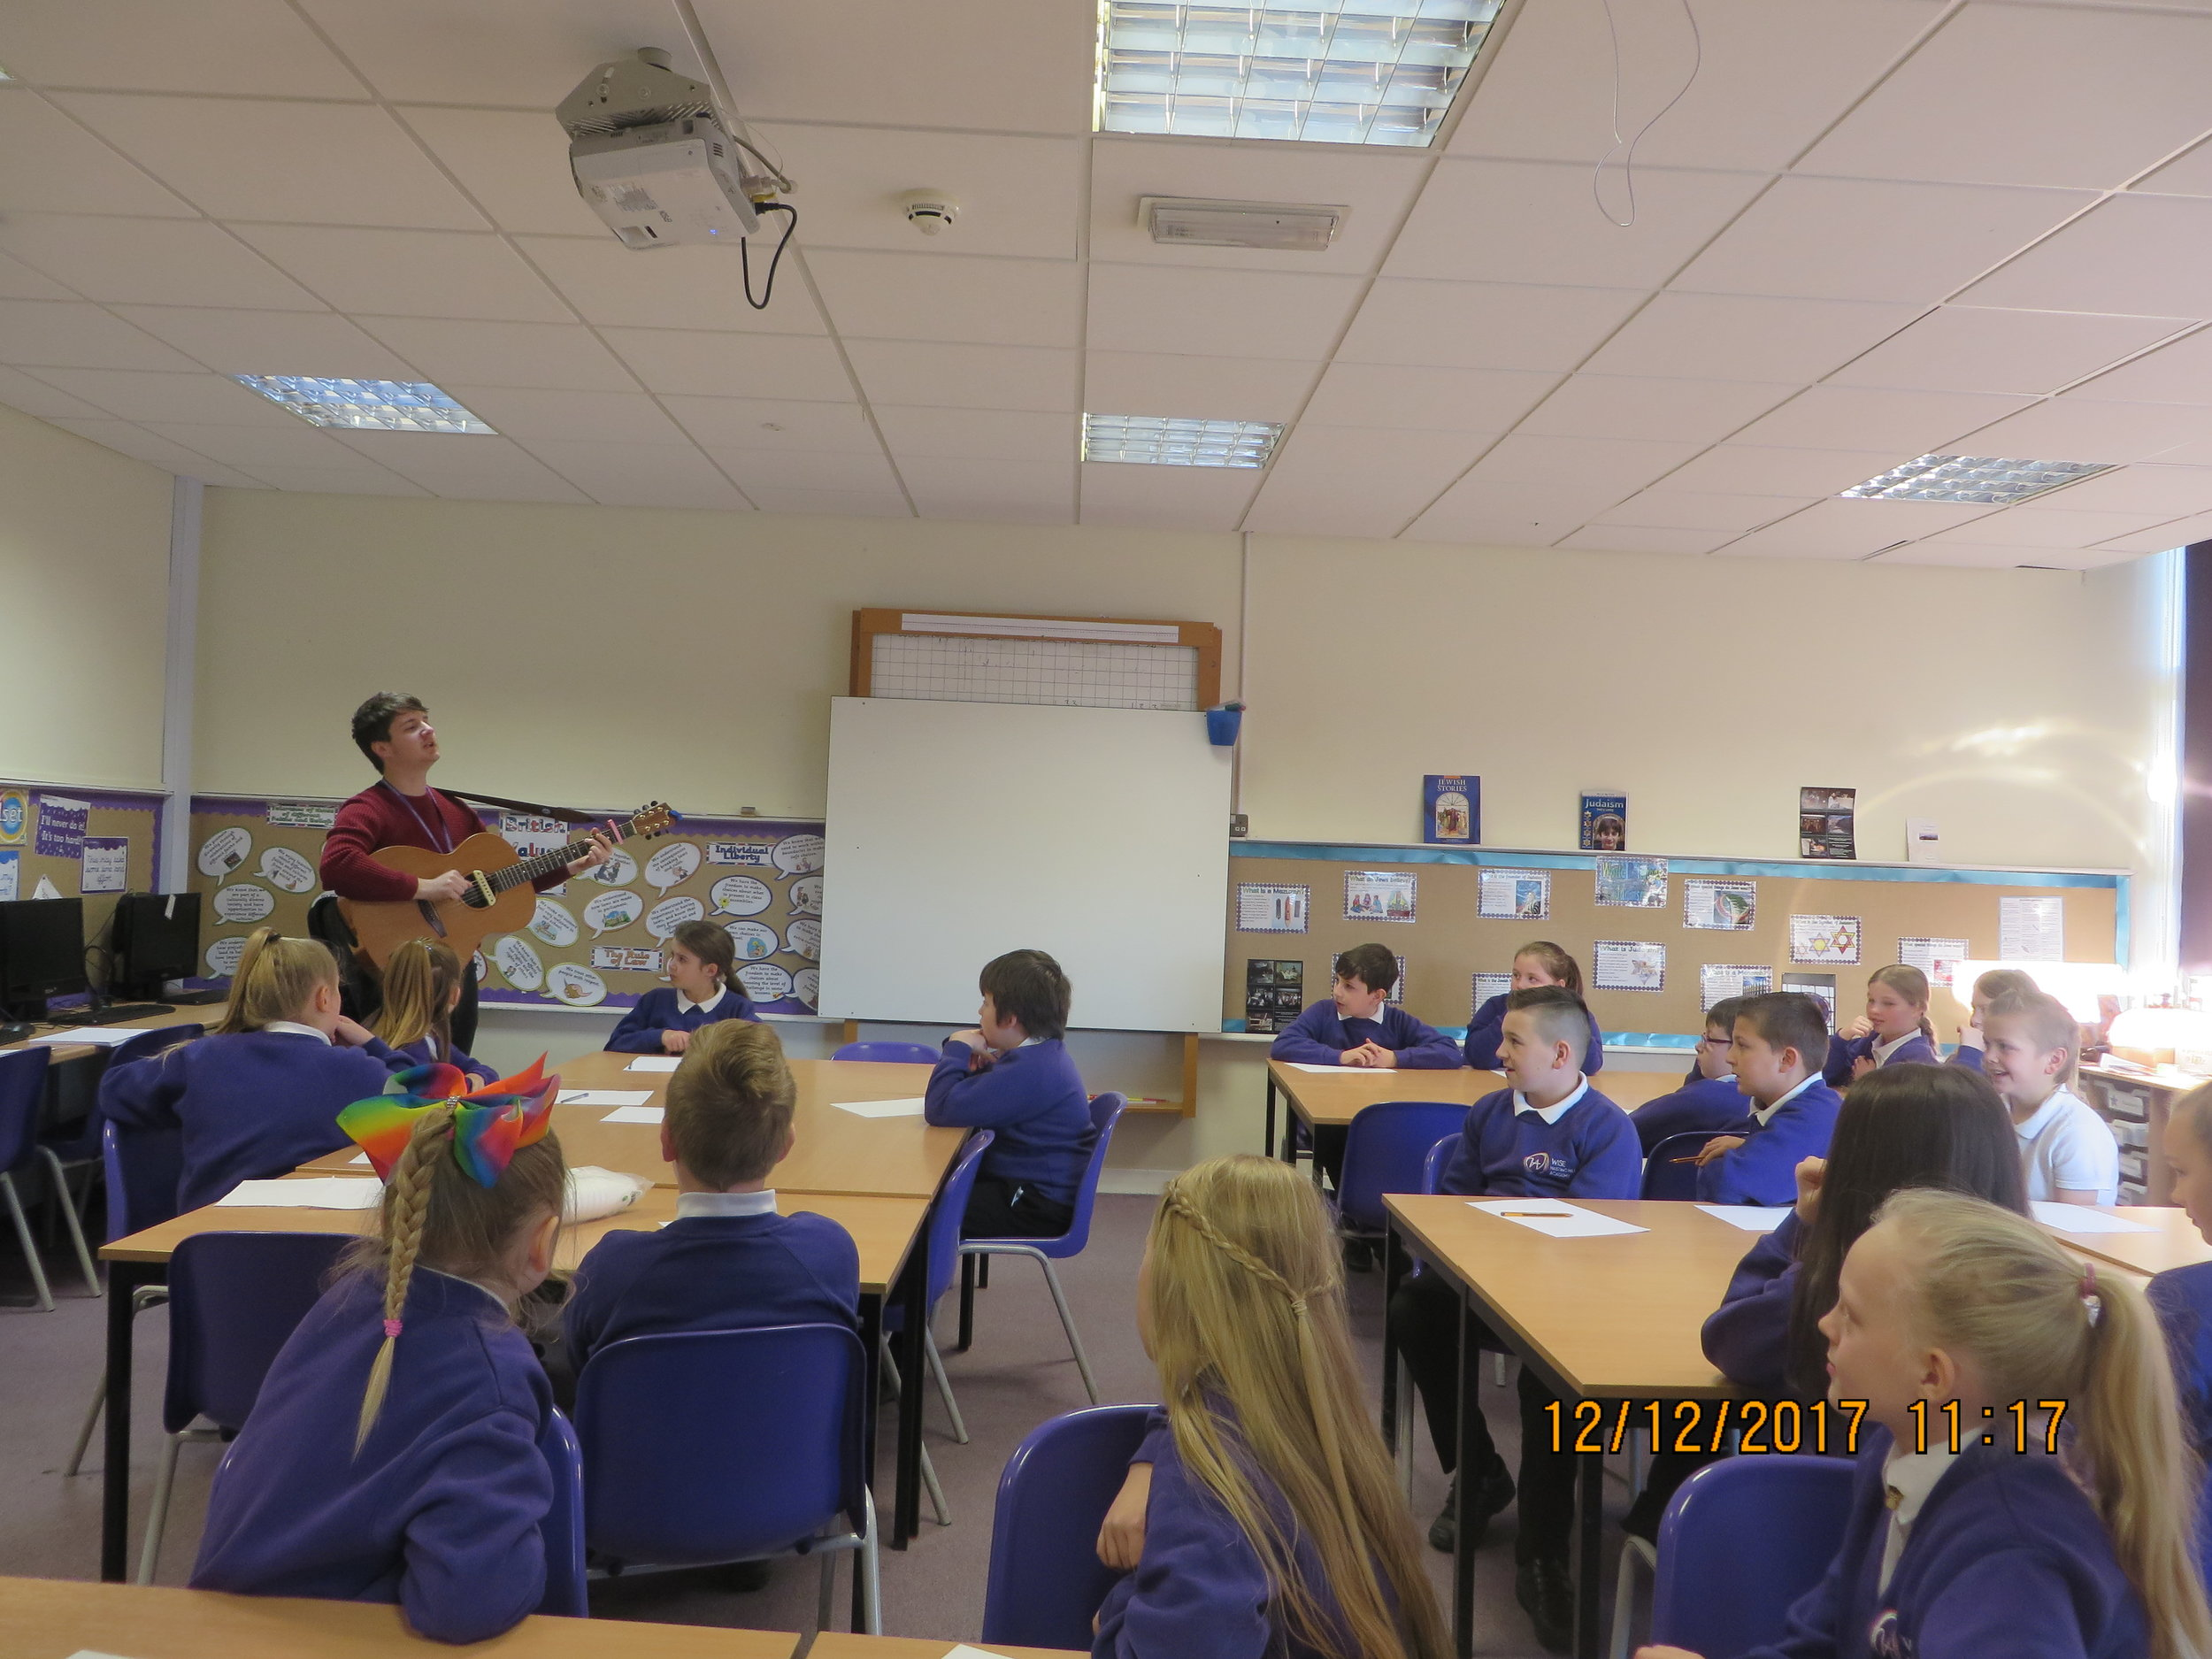 Hasting Hill's songwriting workshop